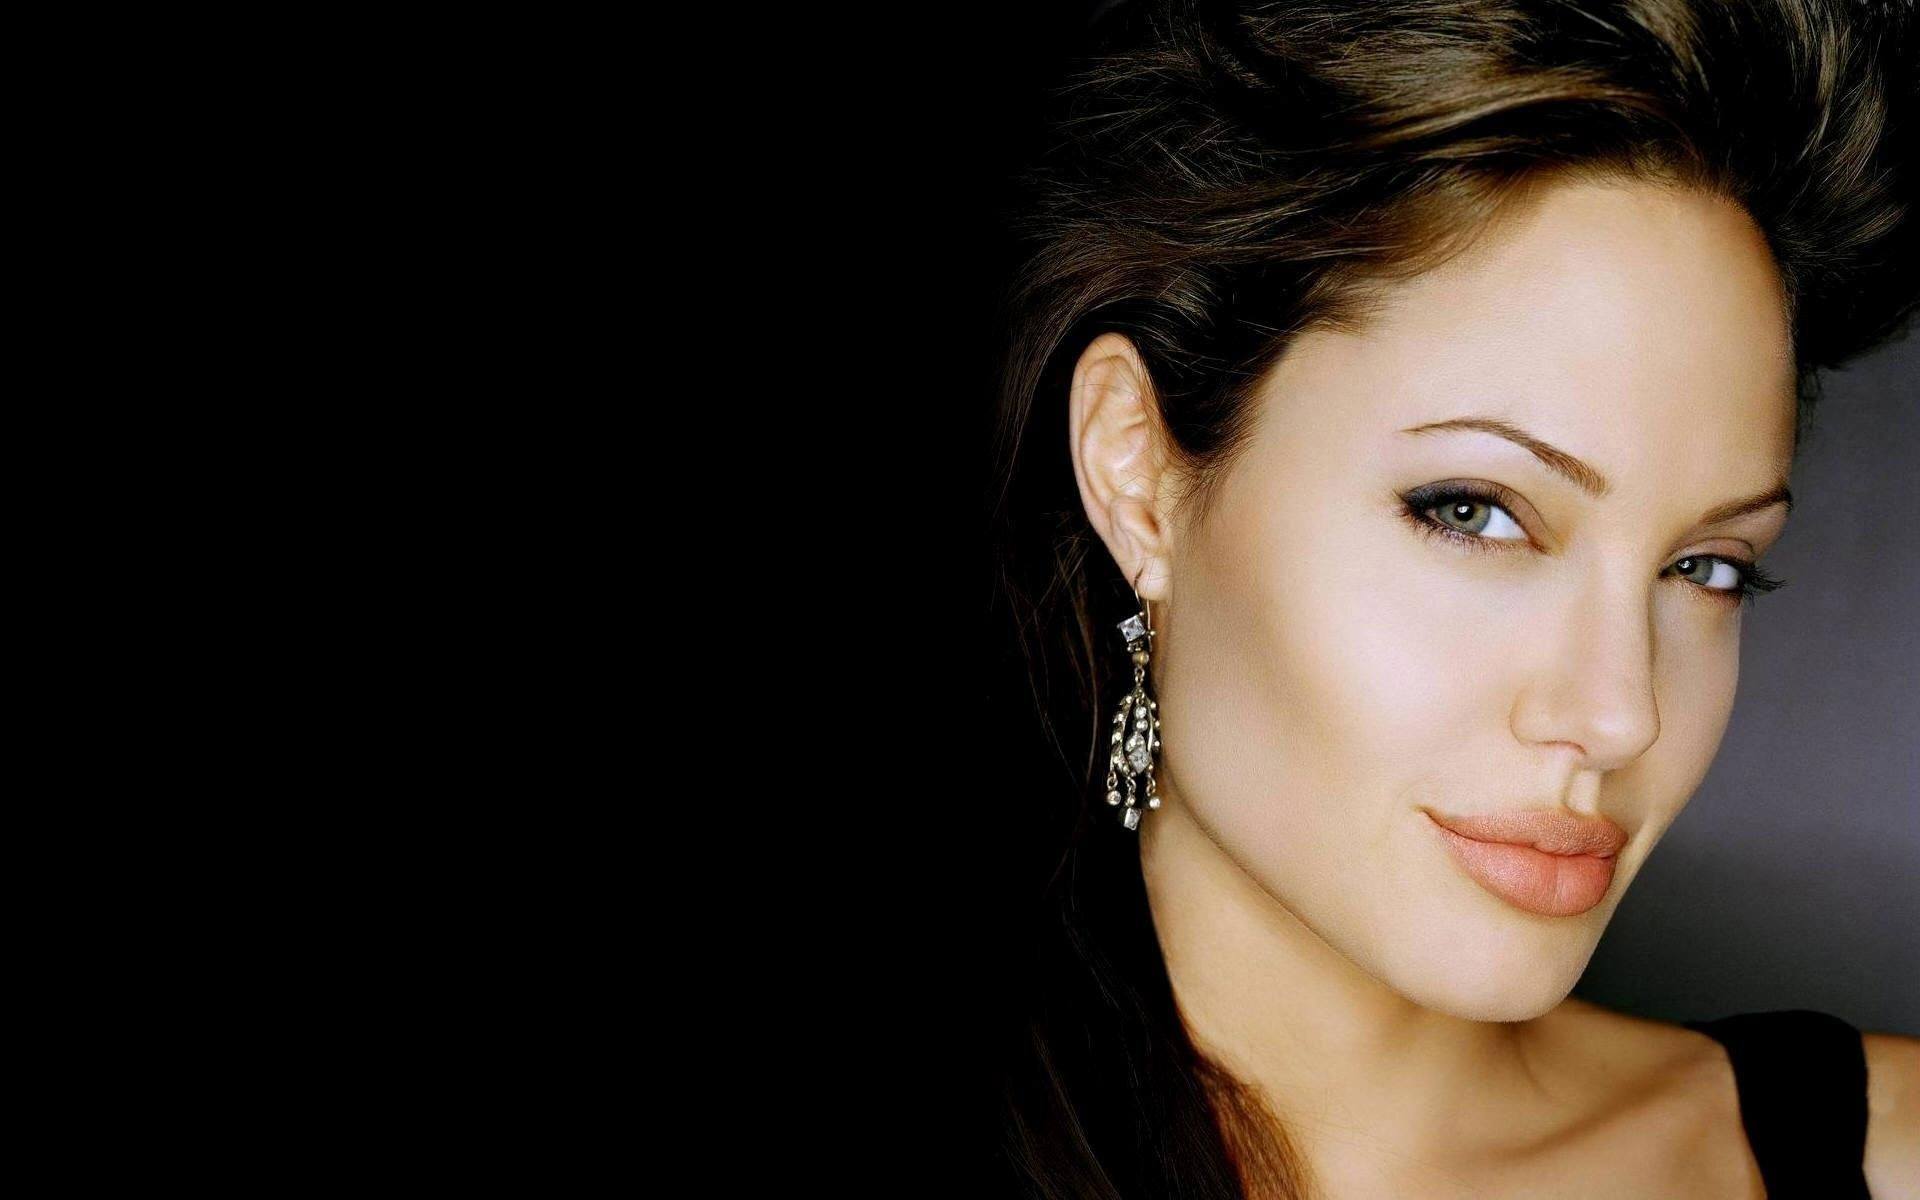 ... Angelina Jolie Wallpaper ...